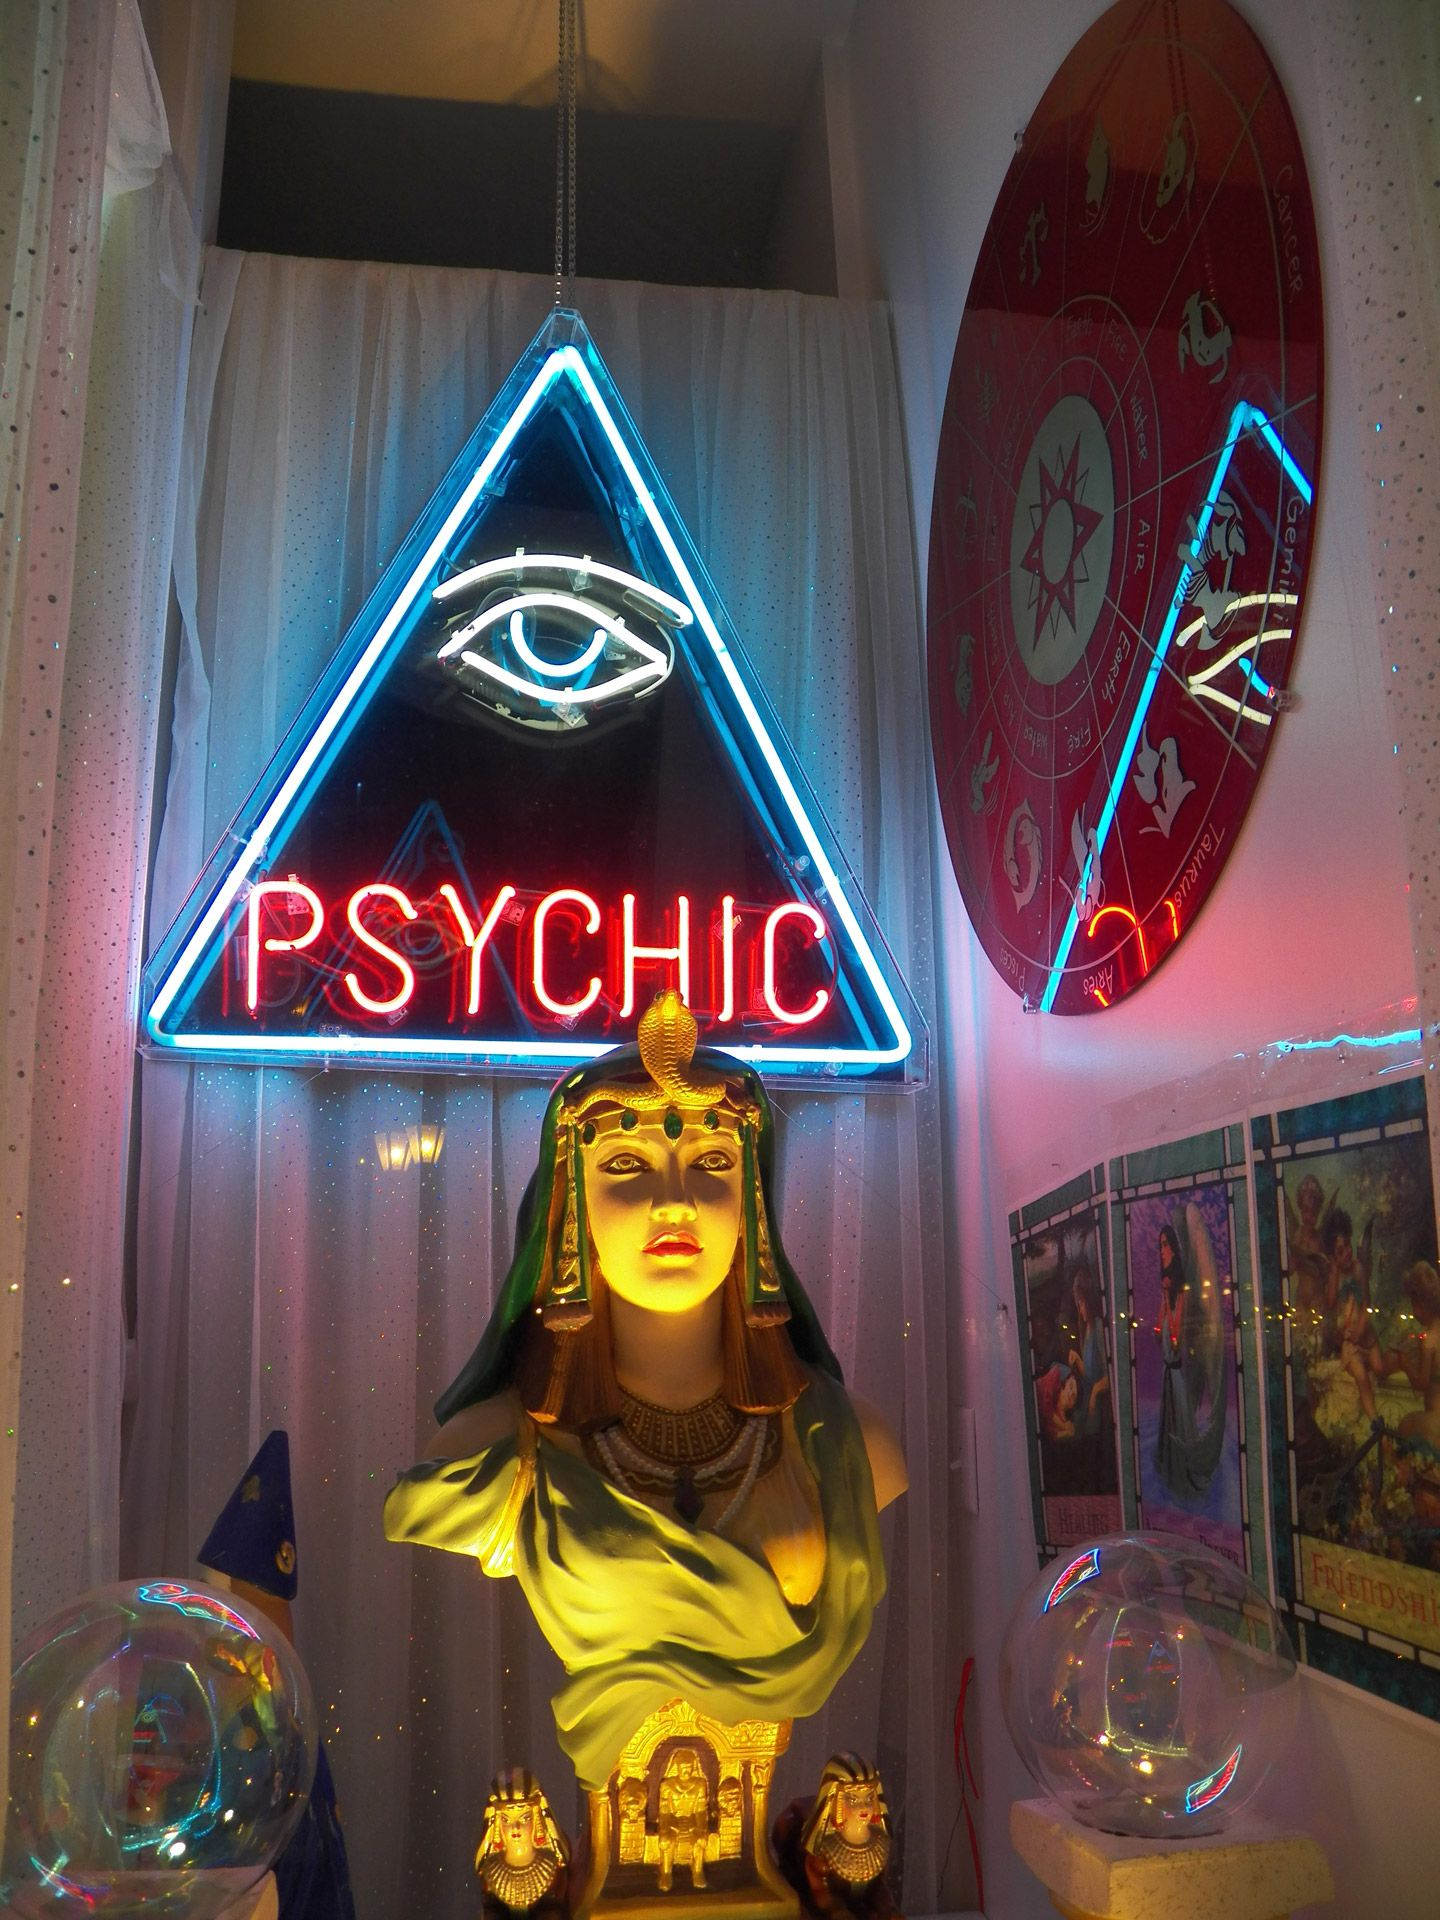 Psychic Free Stock Photo - Public Domain Pictures